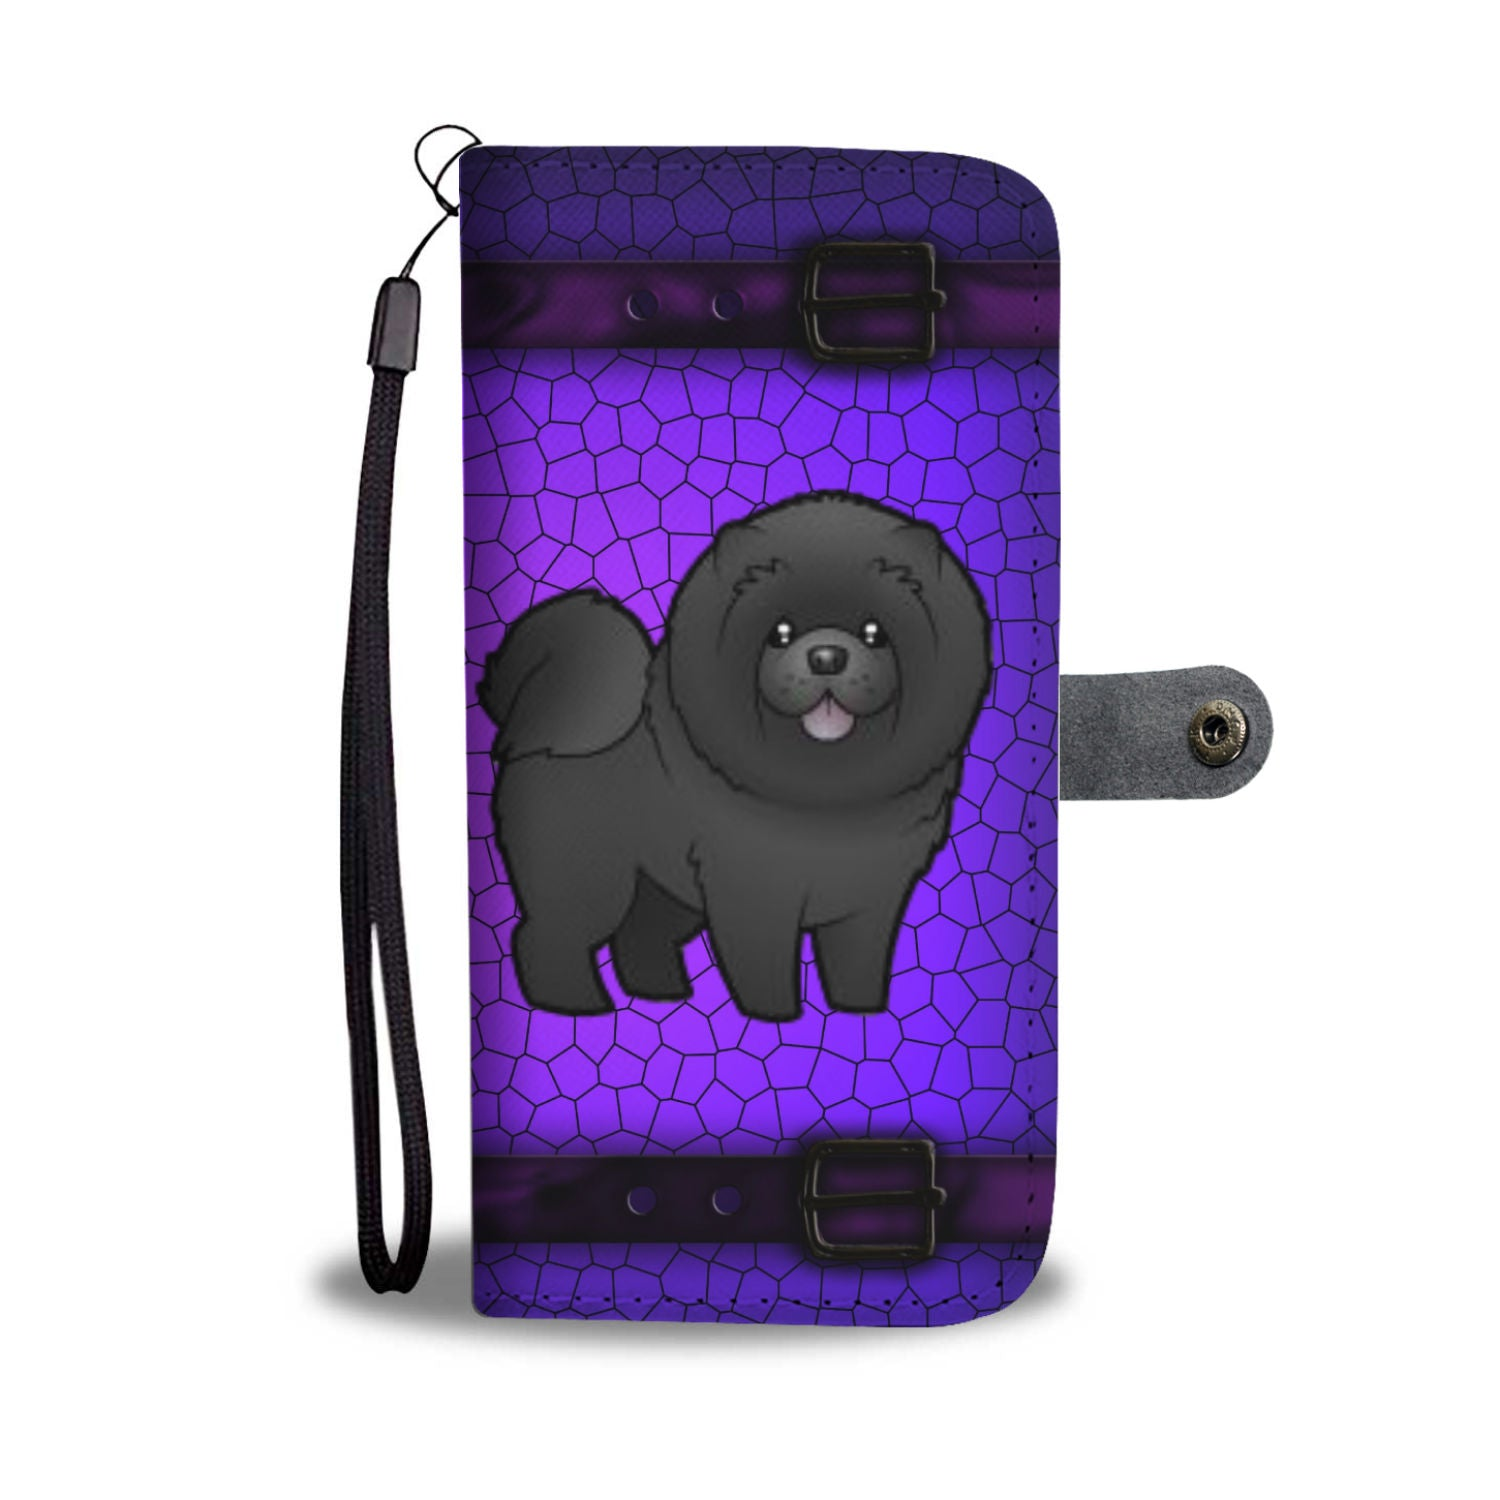 Chow Chow Phone Case Wallet - Black